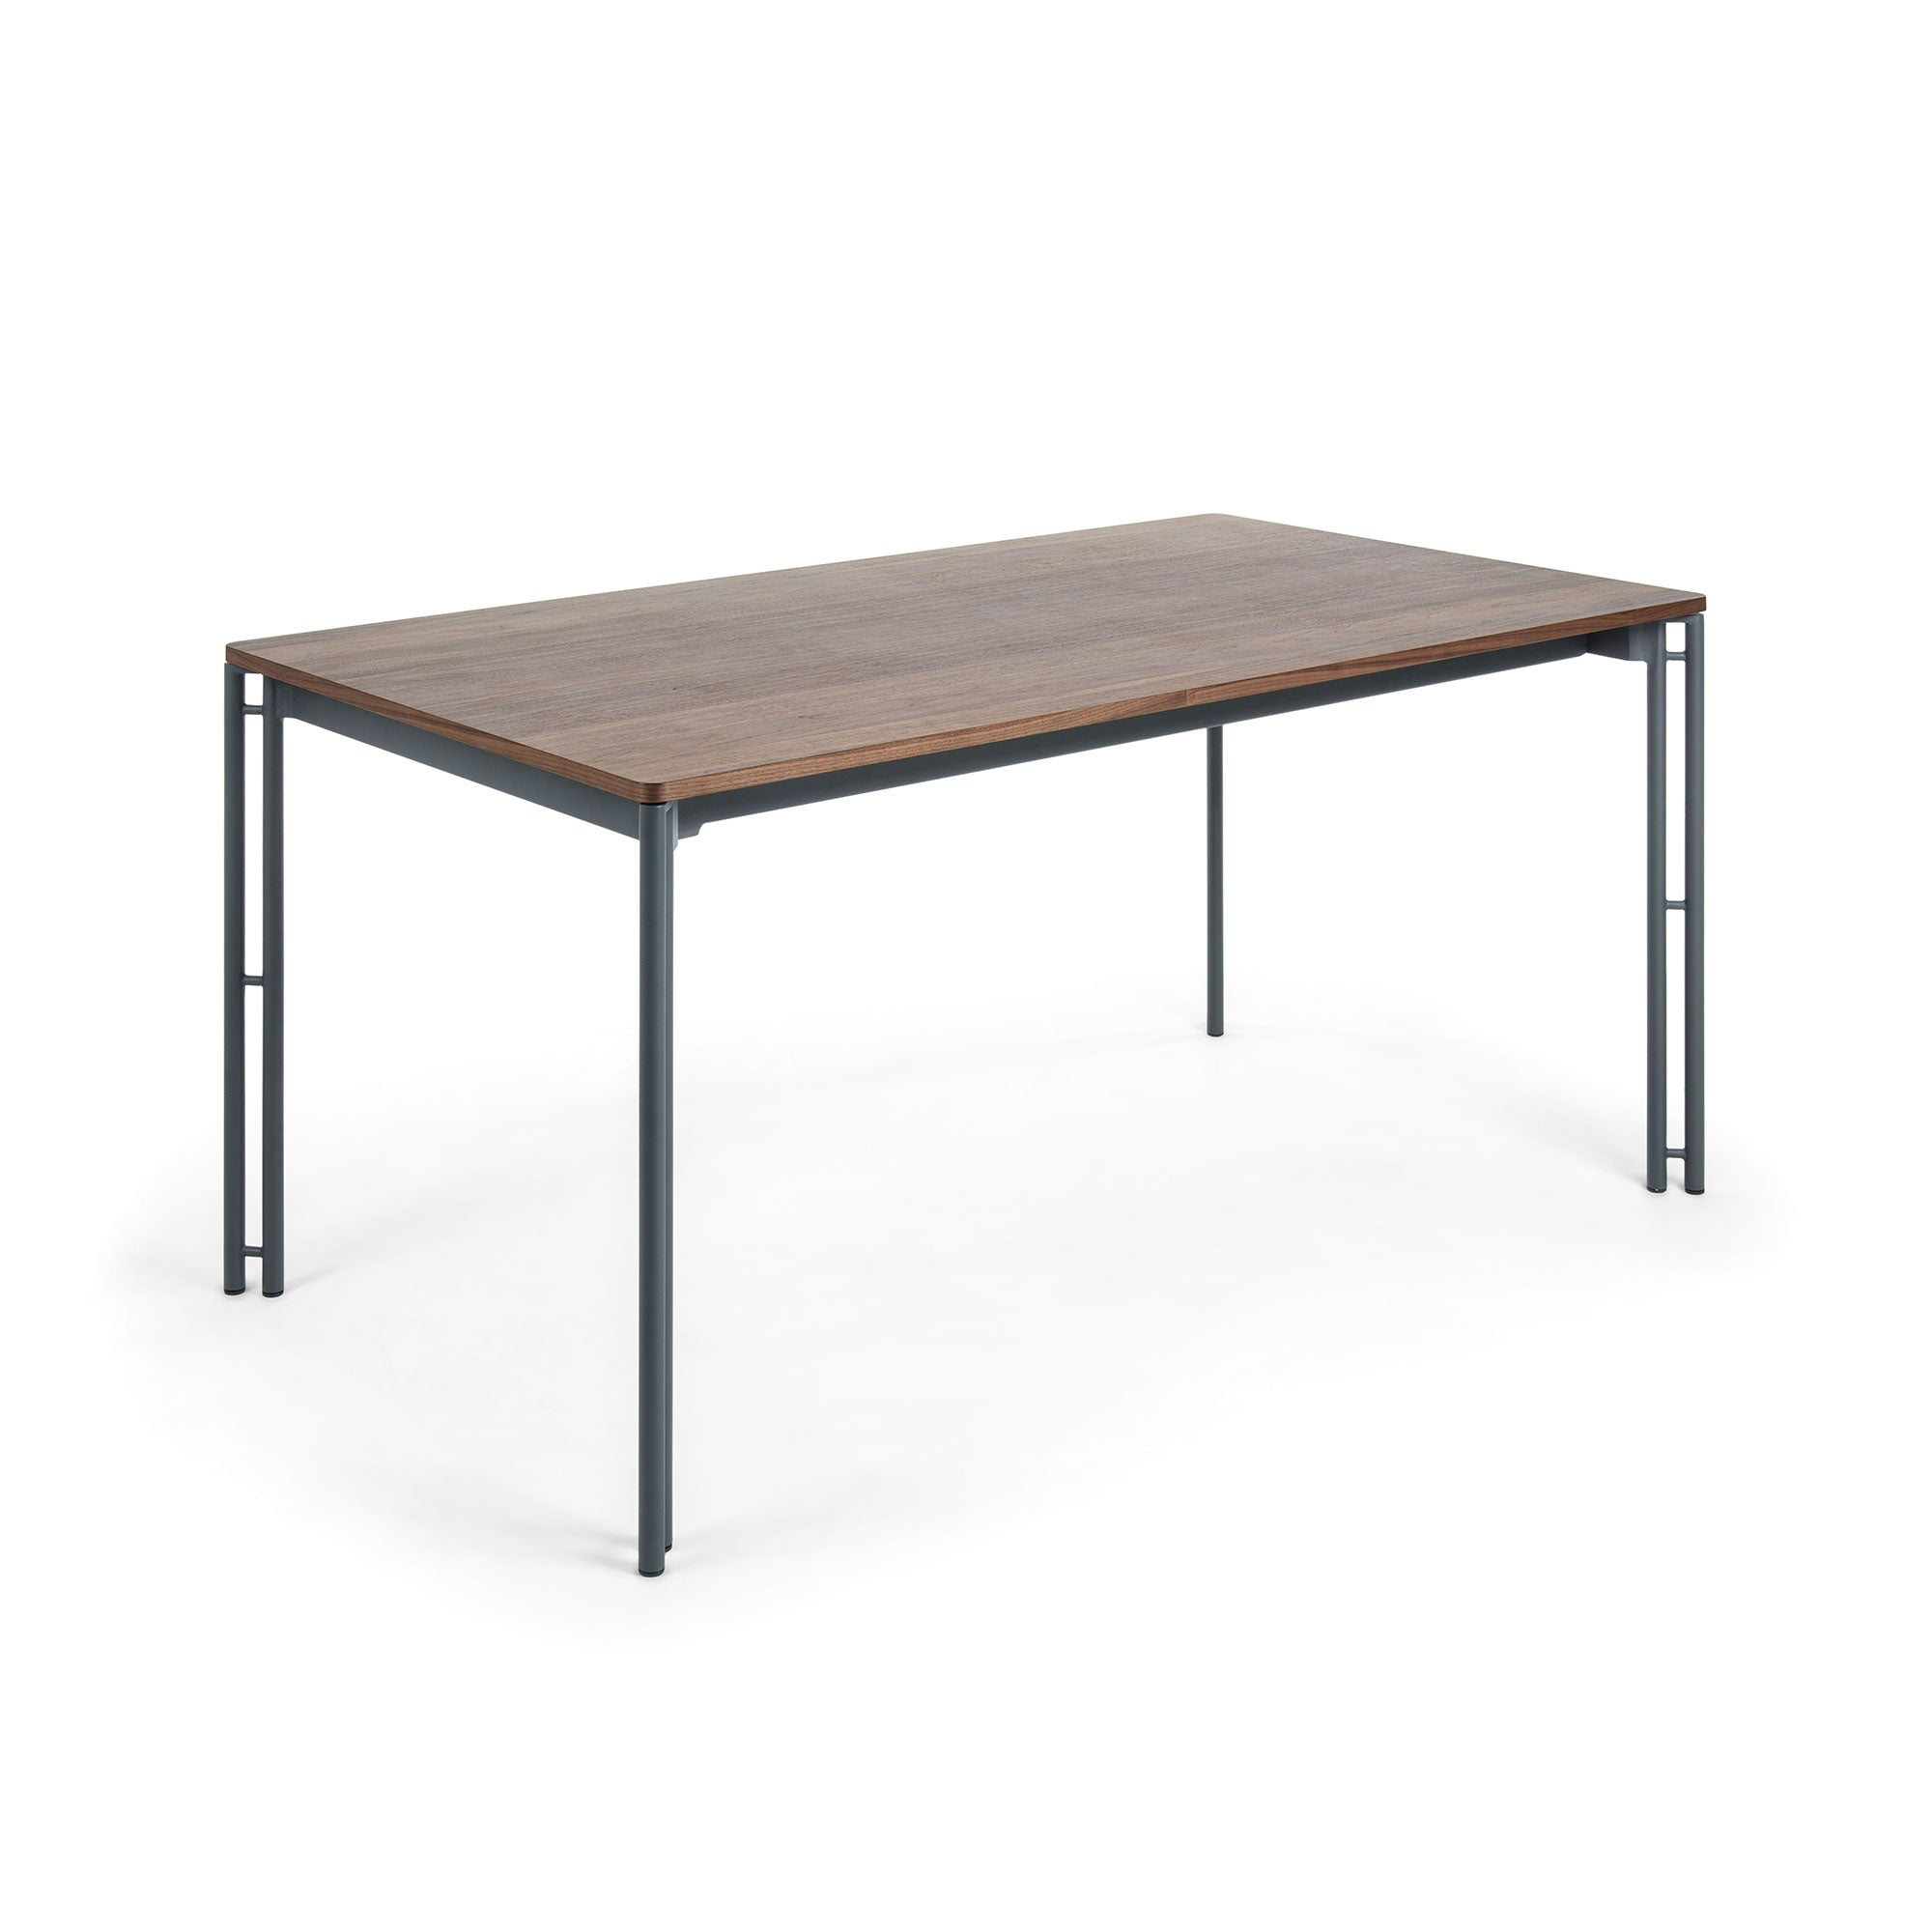 Masonette Table 160-220x90 graphite, walnut veneer, Dining Table - Home-Buy Interiors